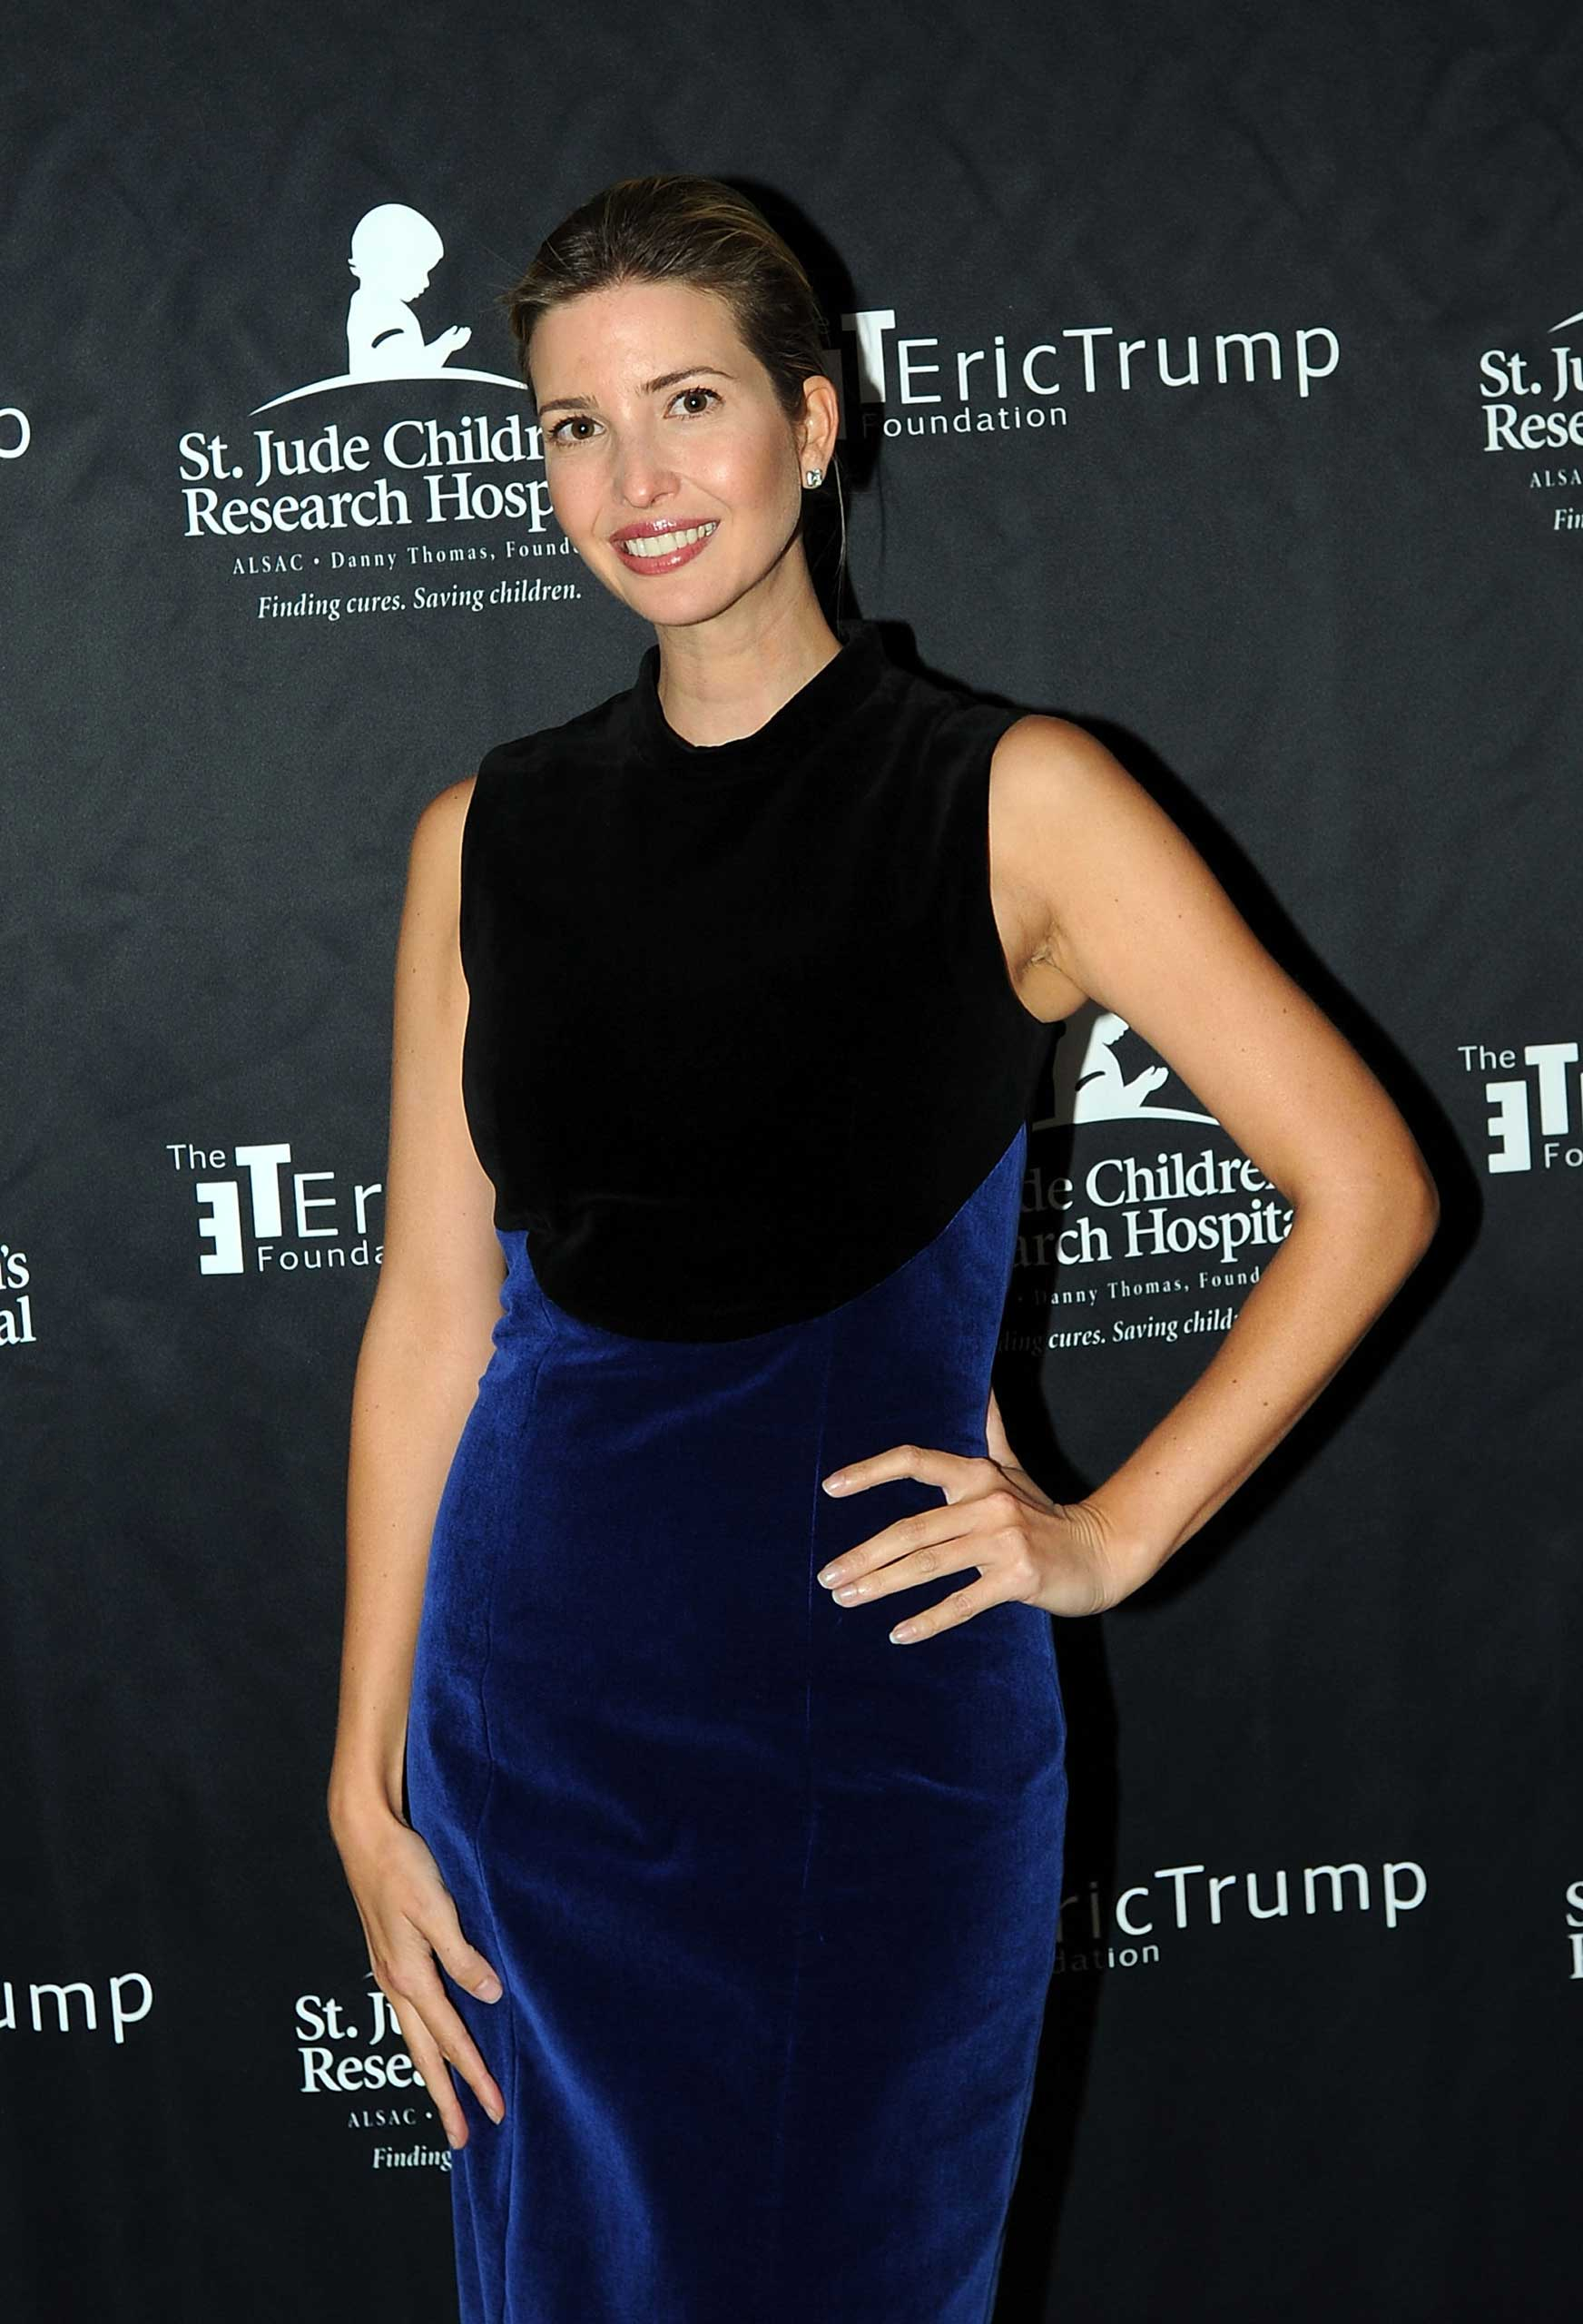 Ivanka Trump attends the 9th Annual Eric Trump Foundation golf invitational at Trump National Golf Club Westchester in Briarcliff Manor City, on Sept. 21, 2015